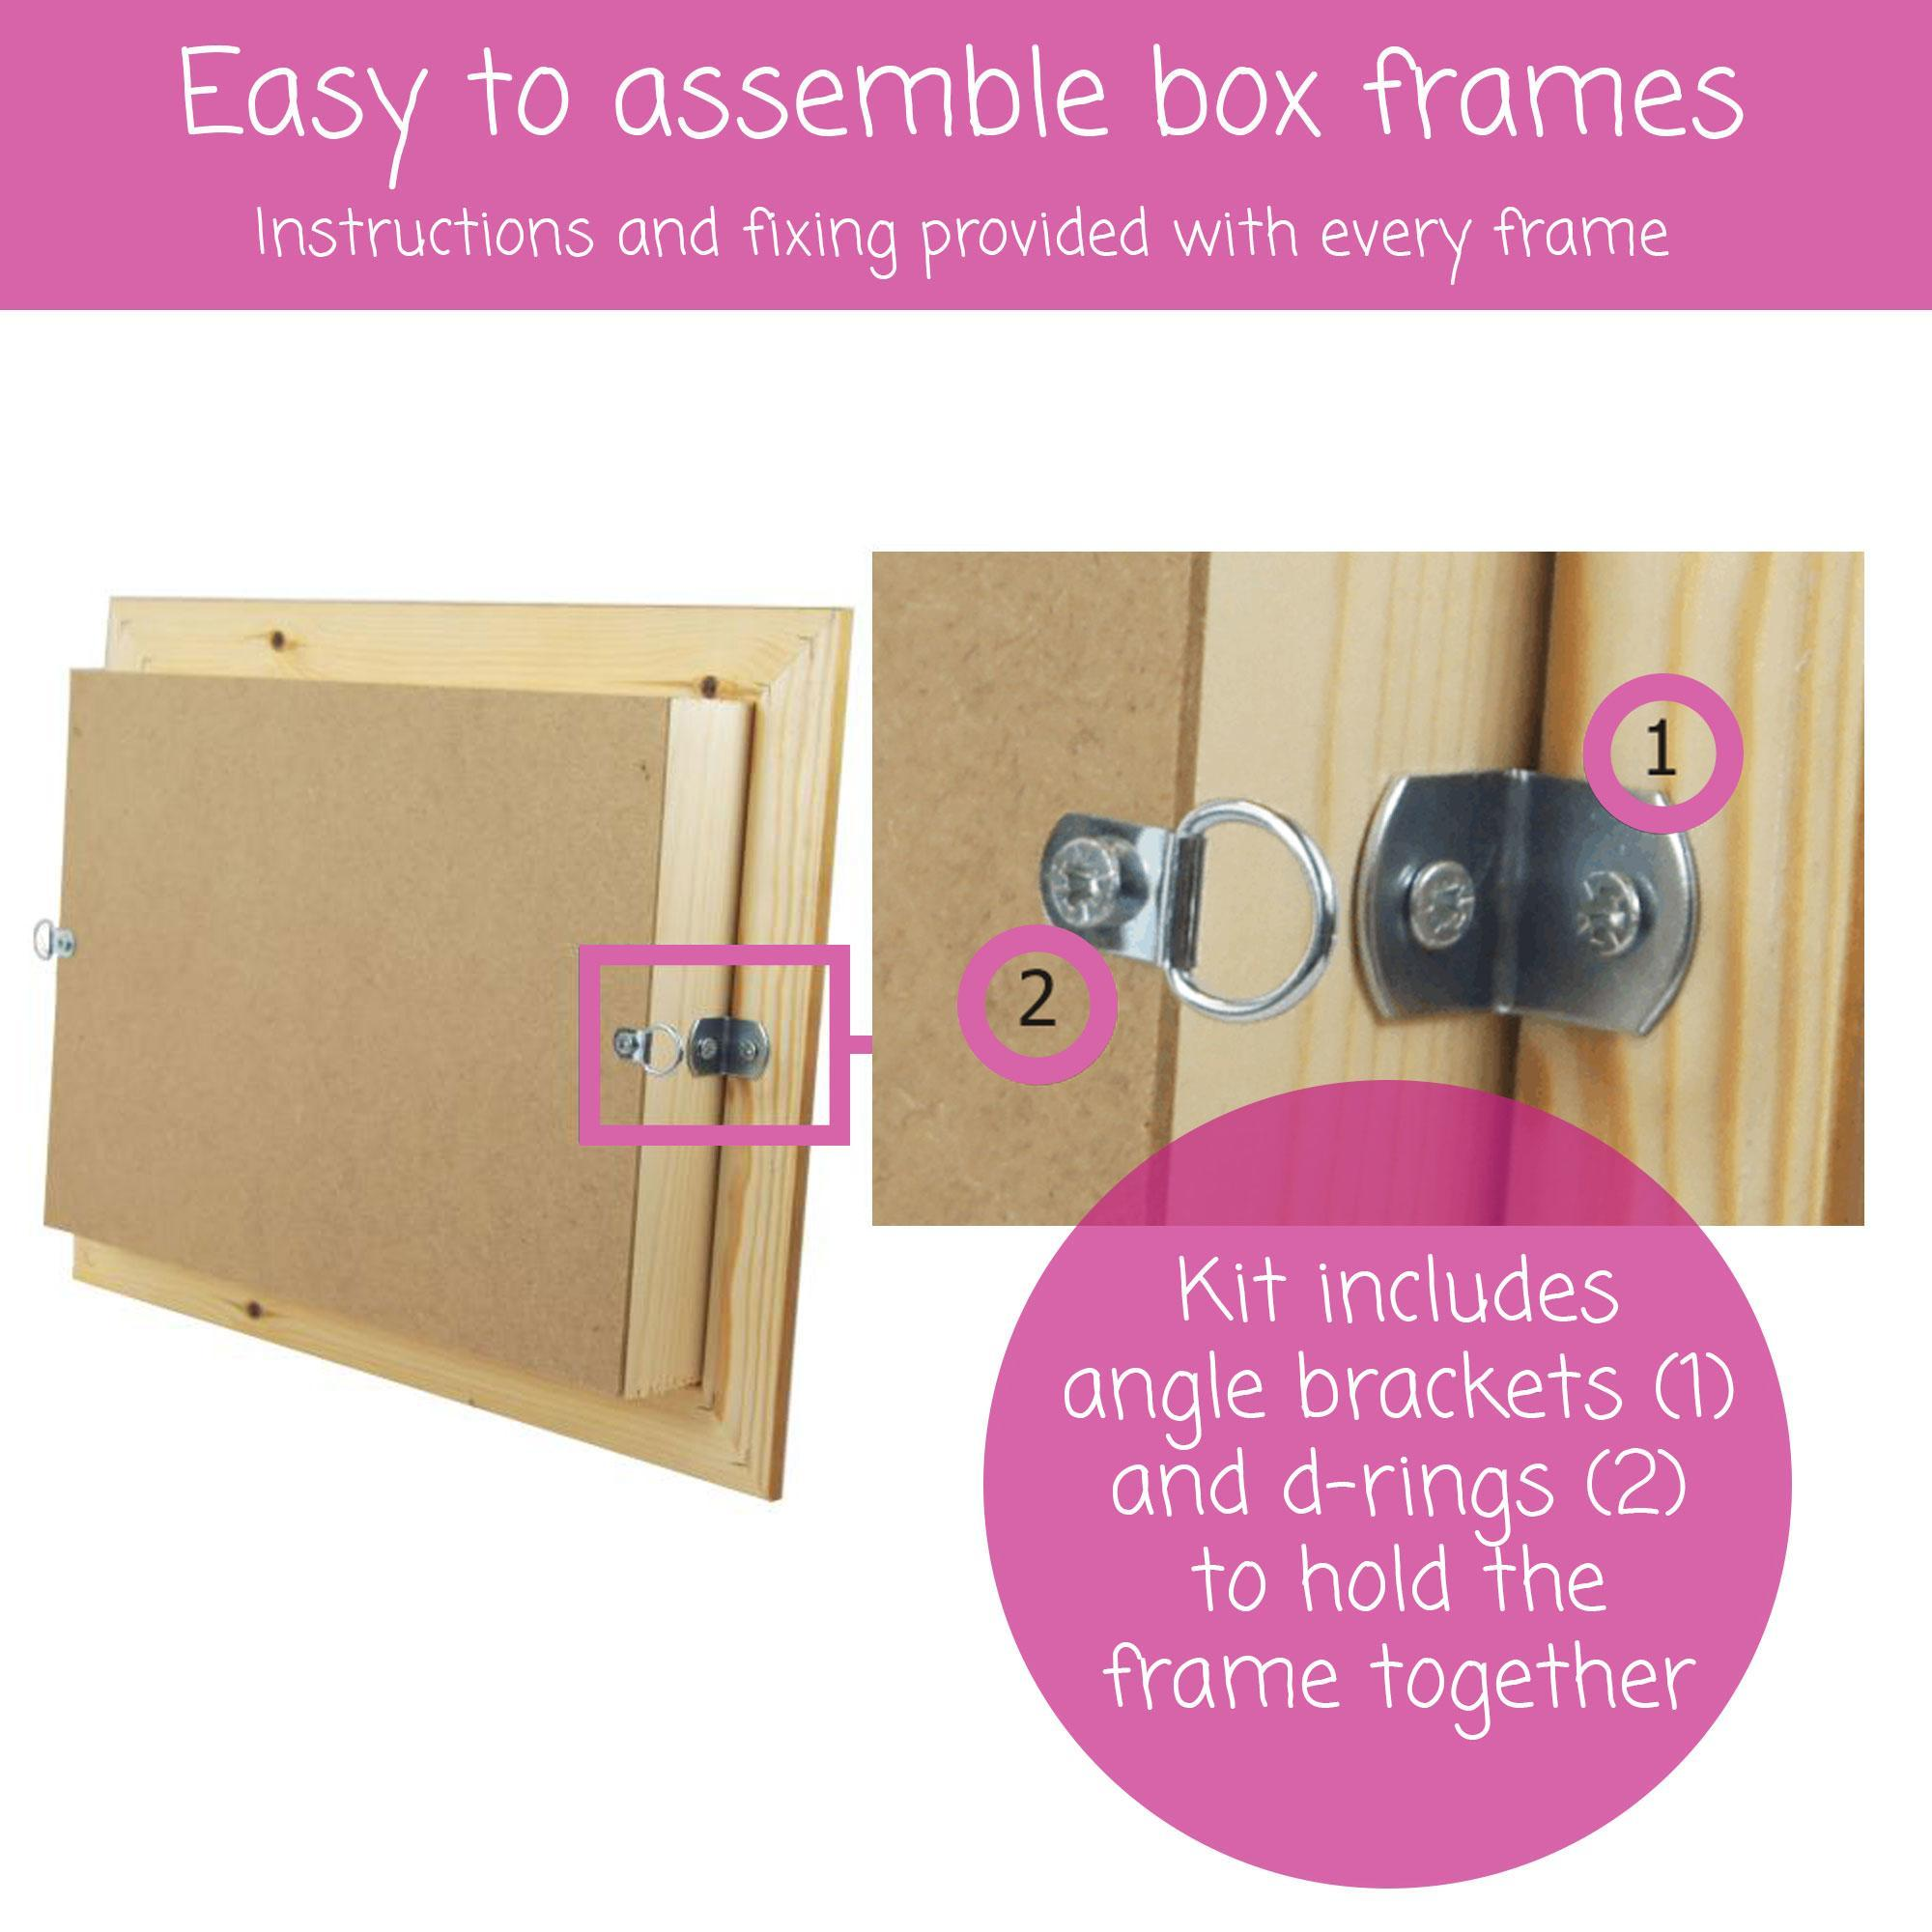 Example of the rear of the box frame